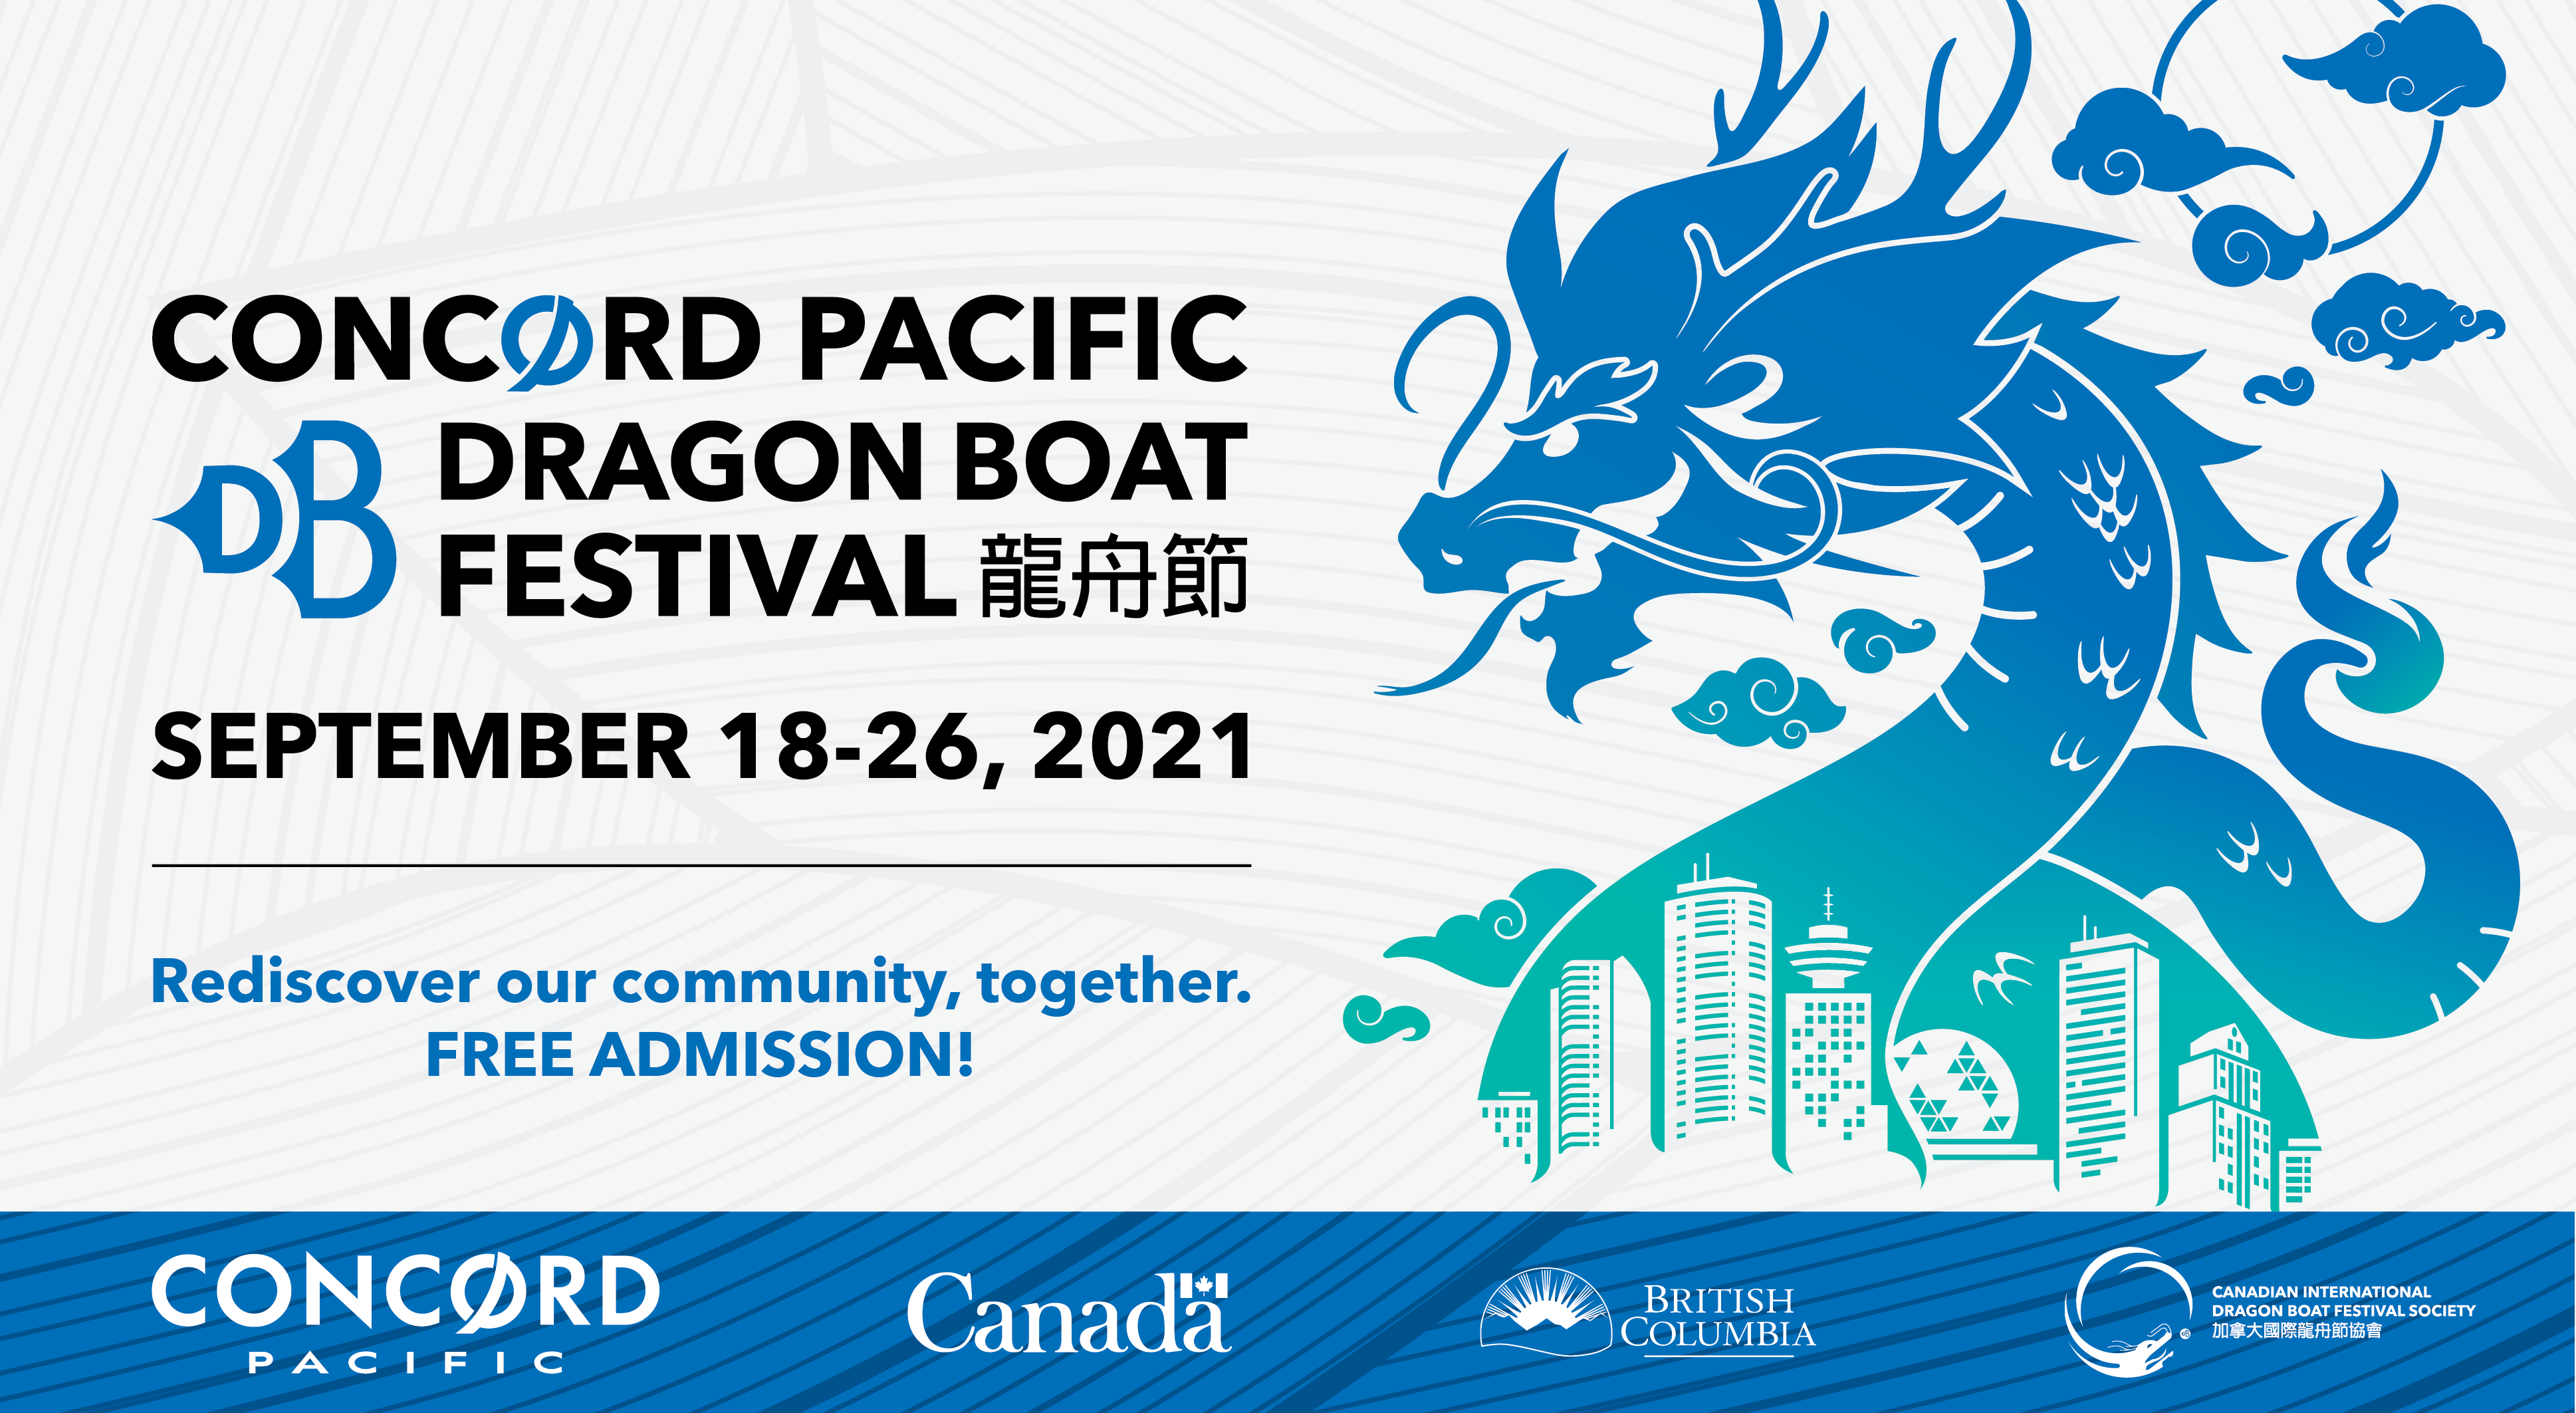 Paddles Up! The Concord Pacific Dragon Boat Festival is Back and Better than Ever